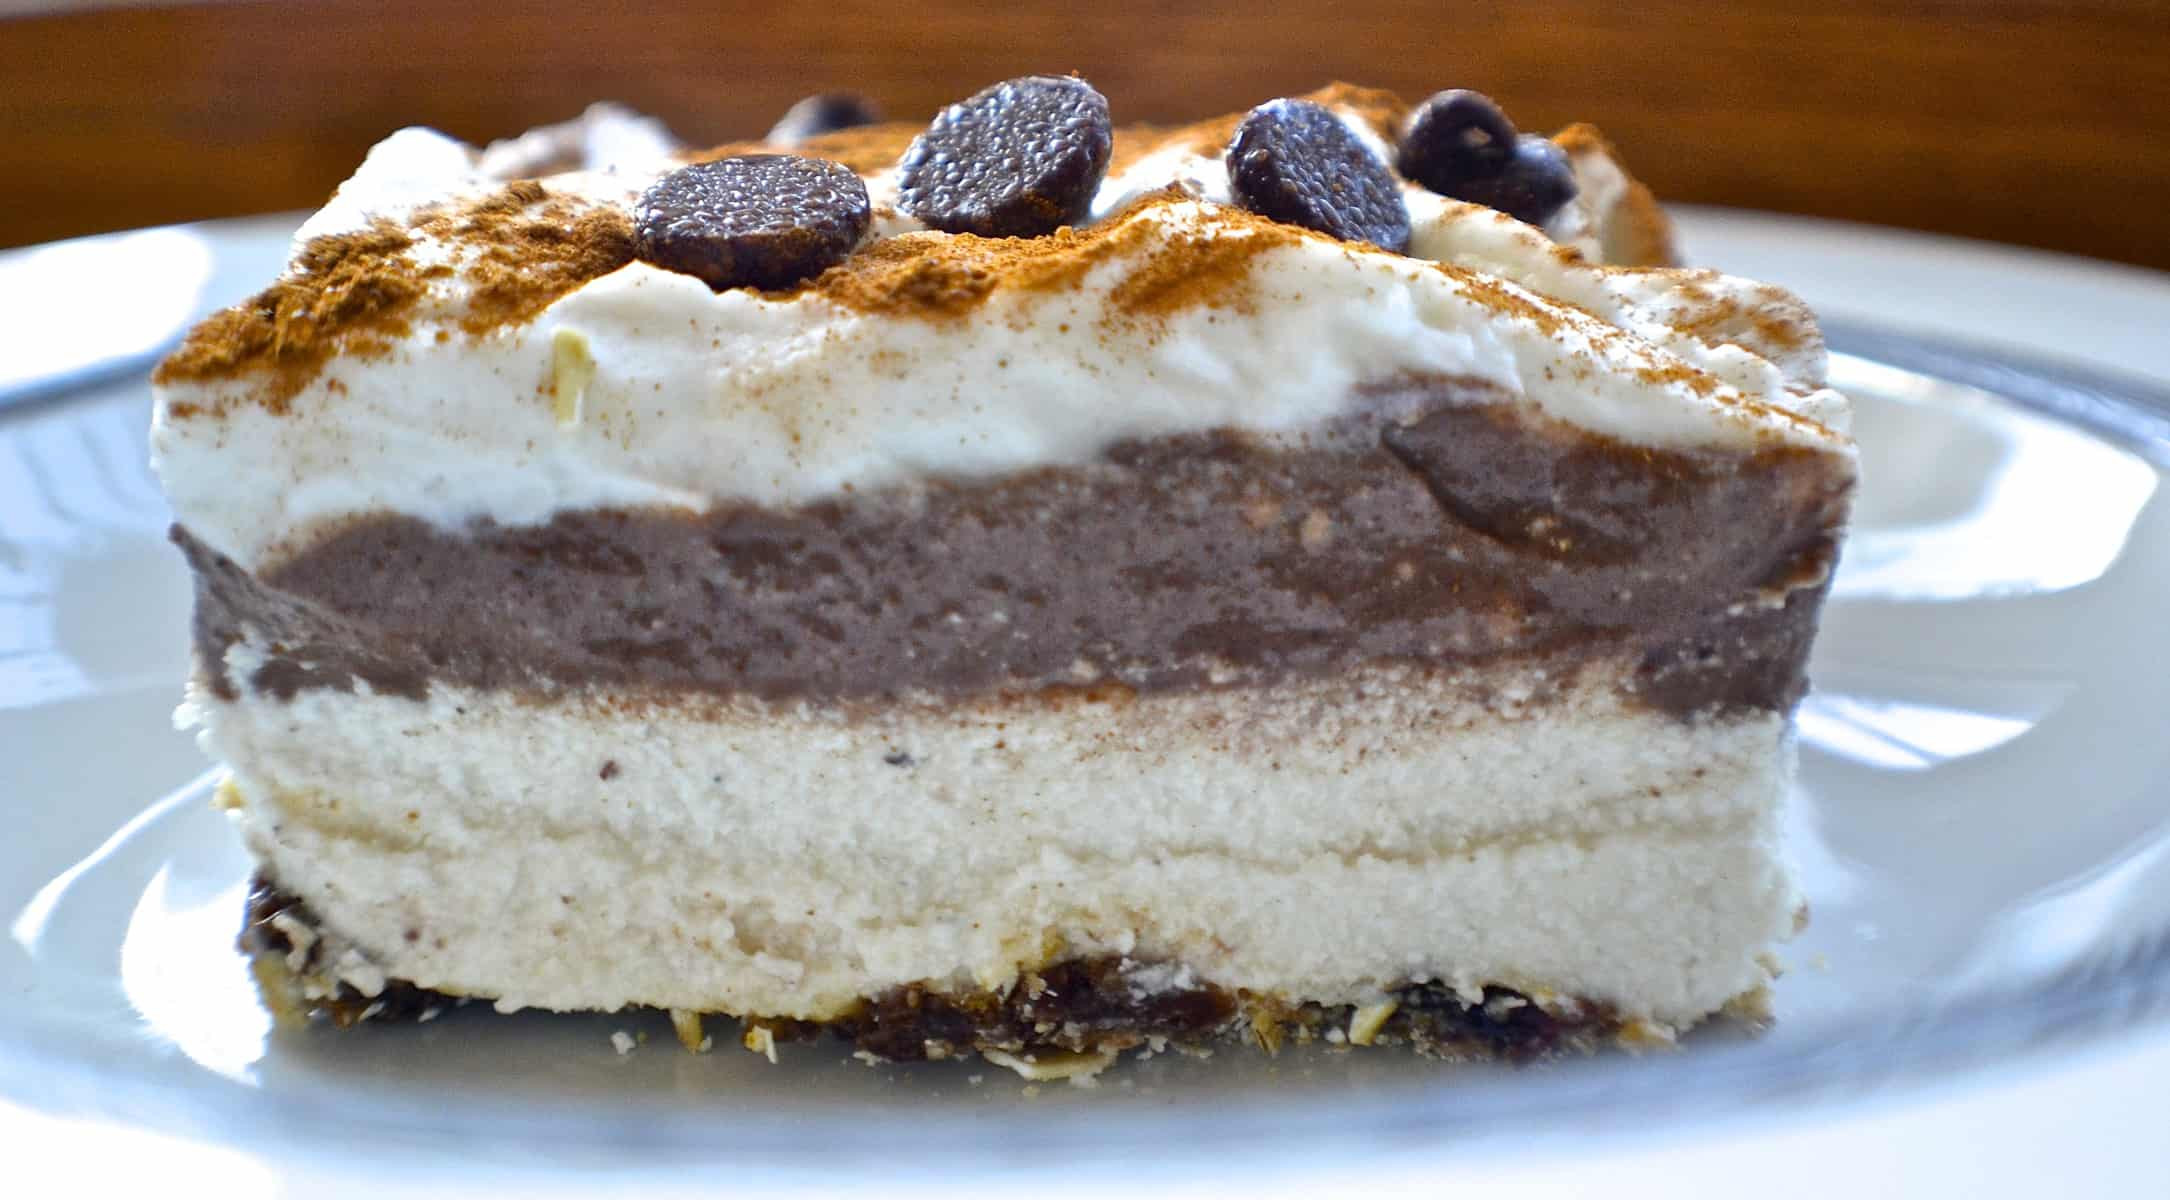 Amazing Dessert Recipes  The best vegan chocolate dessert recipe ever